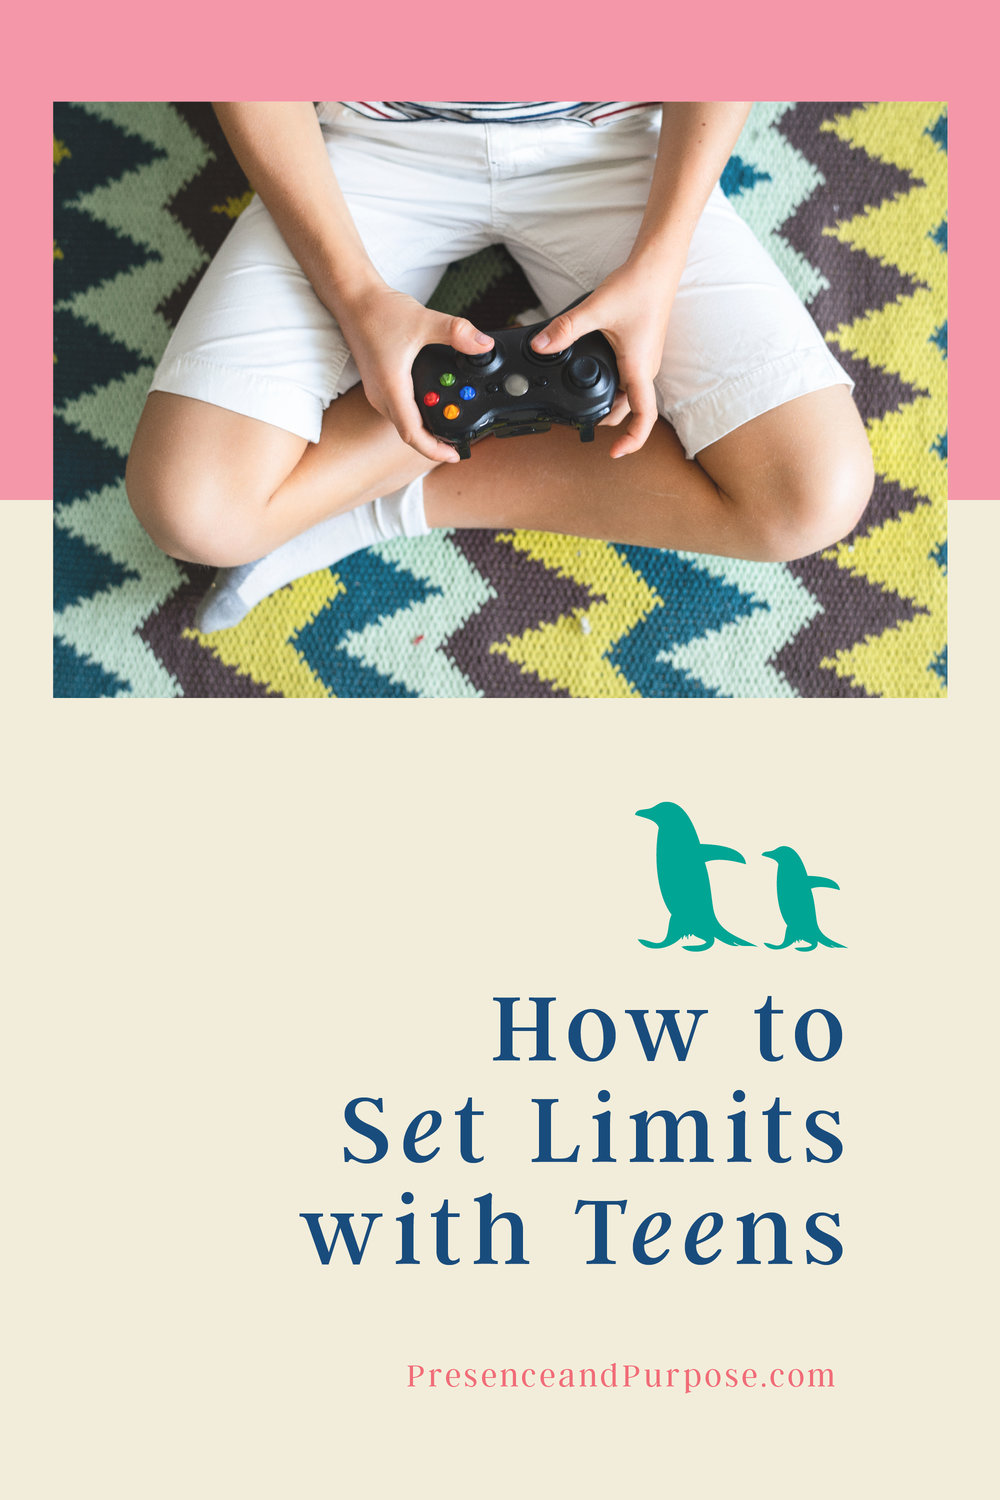 19_0217_How To Set Limits With Teens.jpg